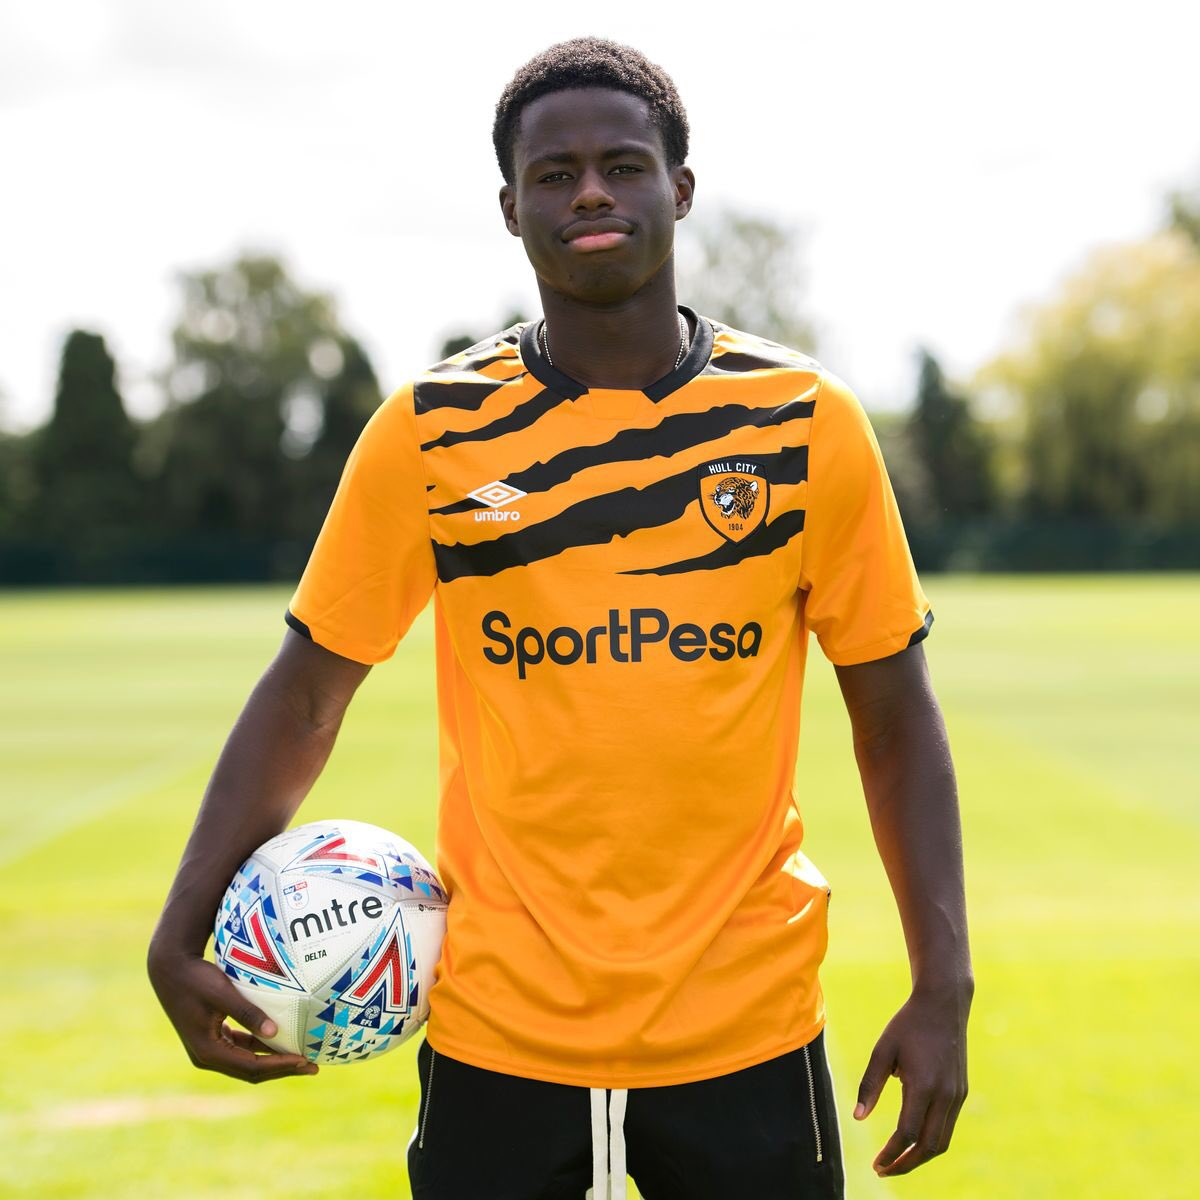 For me, Leo Da Silva Lopes is so underrated. A definite contender for Player of the Season in his first campaign at City. At 21, he's a tough competitor, possesses acceleration, anticipation to win the ball and progress attacks. Recently adding goals and assists too. #hcafc pic.twitter.com/PZzWgisgWj  by Tom